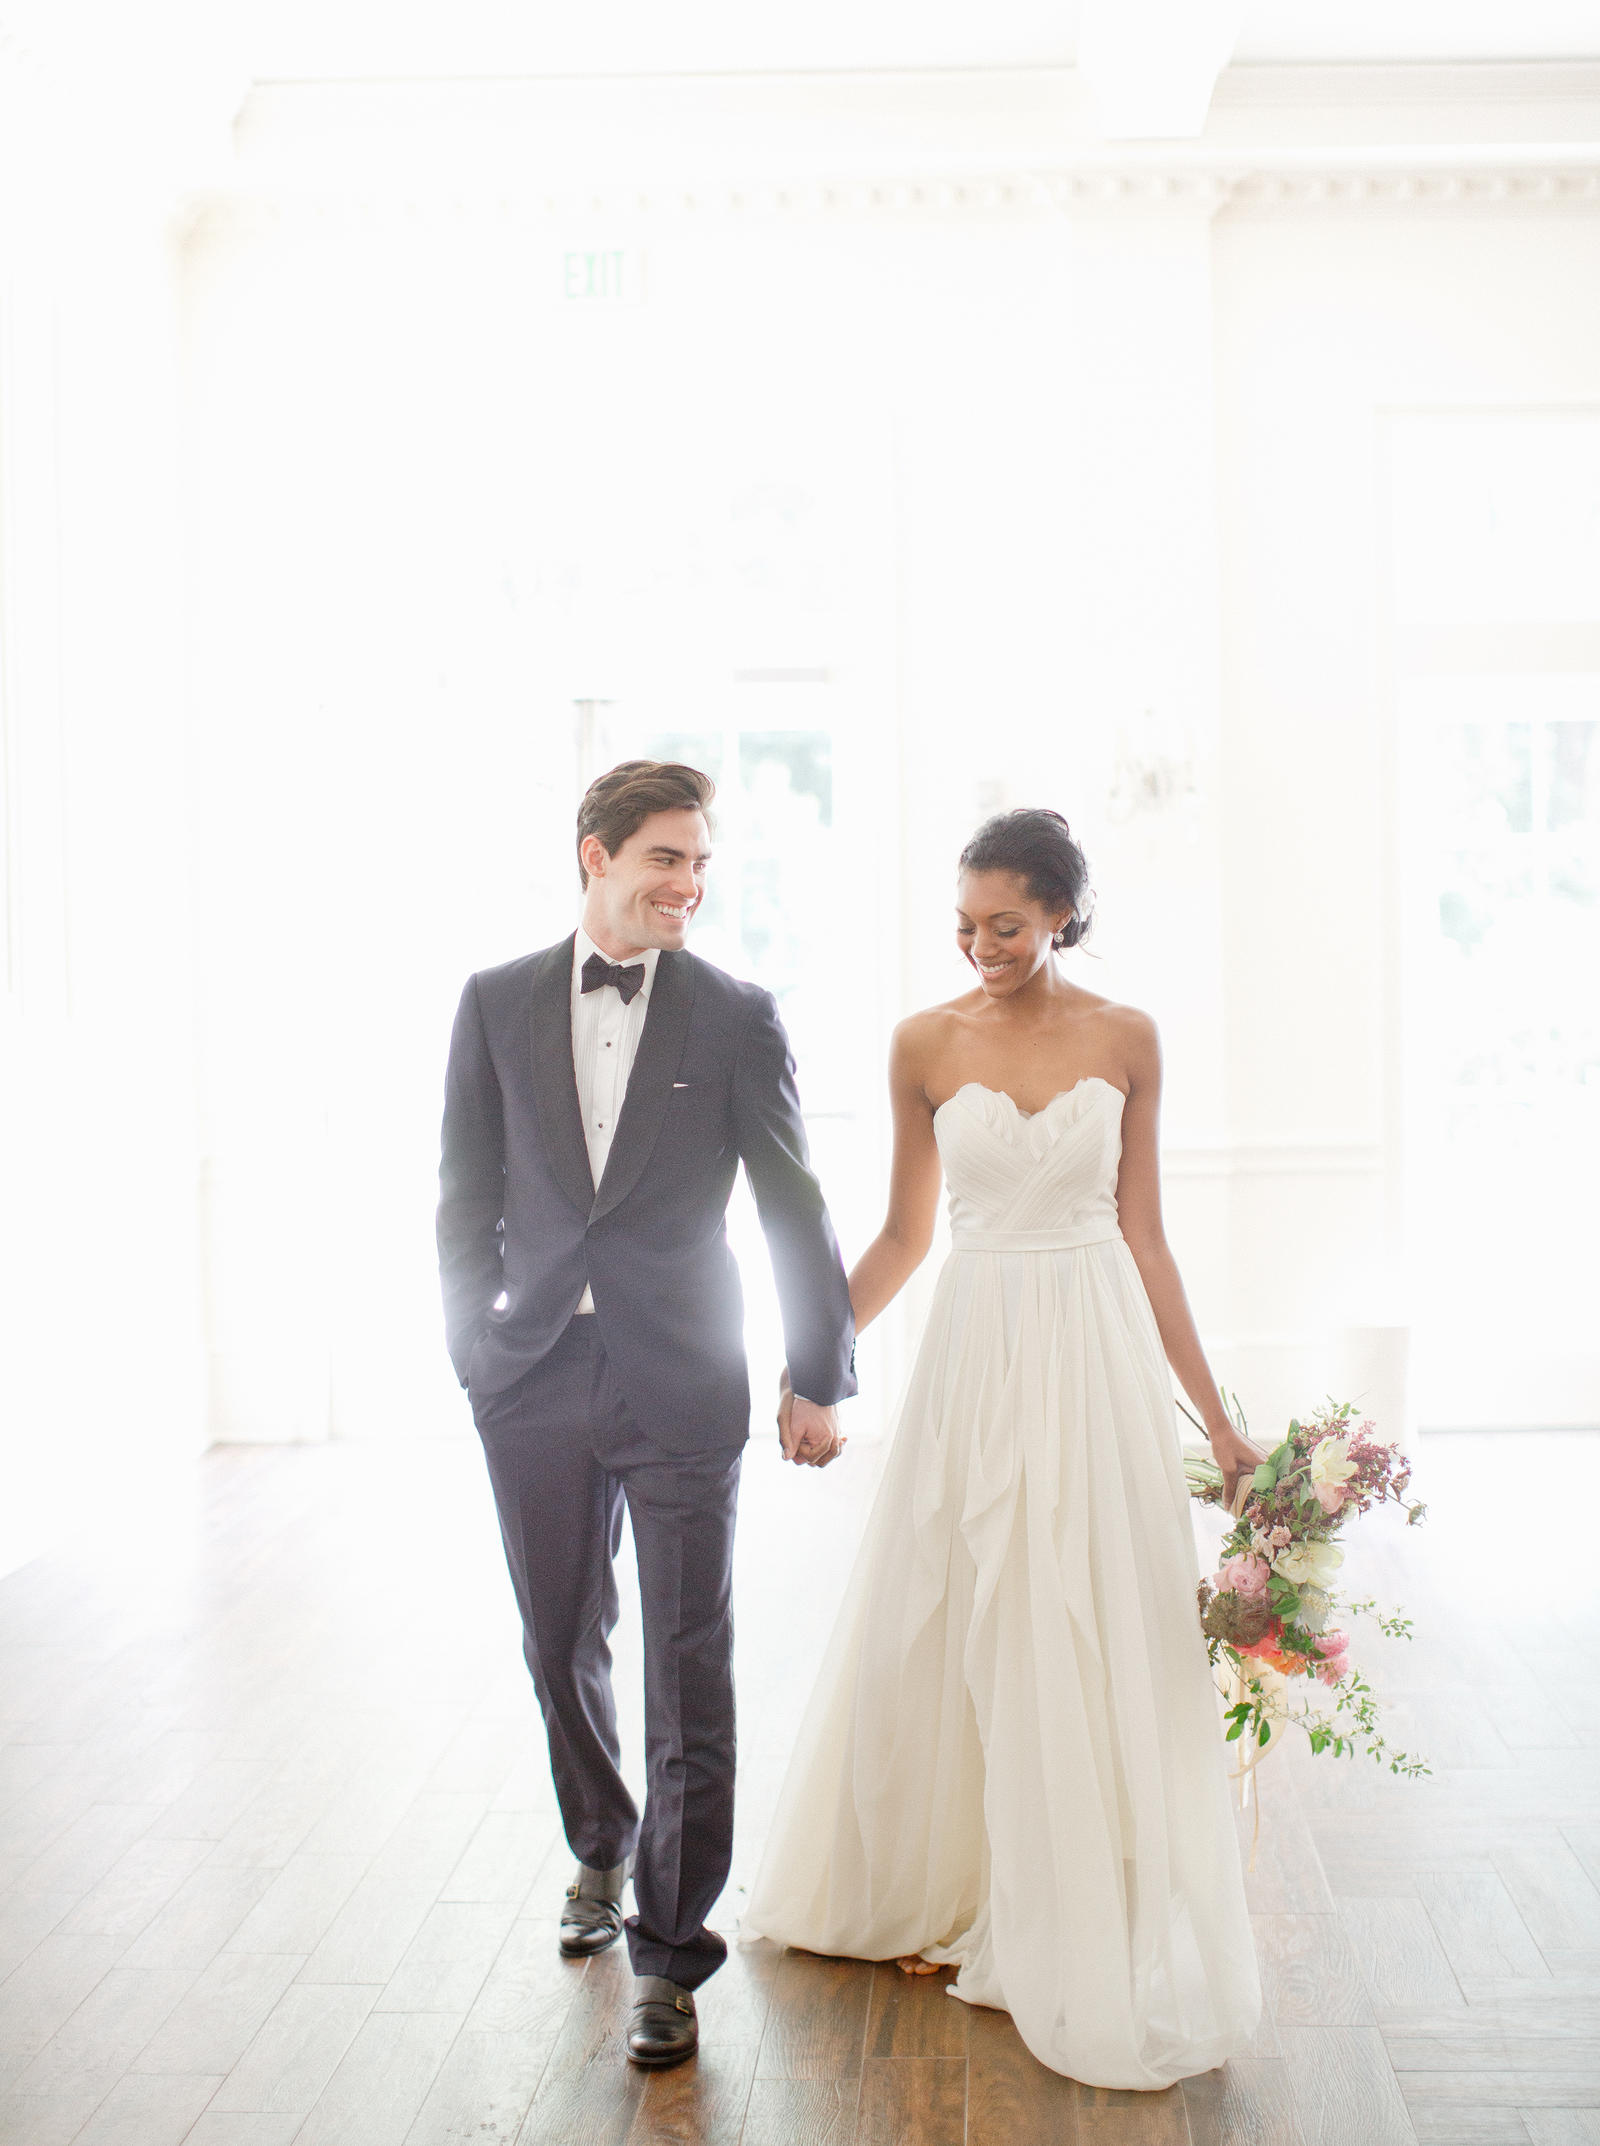 Editorial Photography | Atlanta, GA | A bride and groom walk together, hand in hand, with the sunlight streaming through the window behind them.